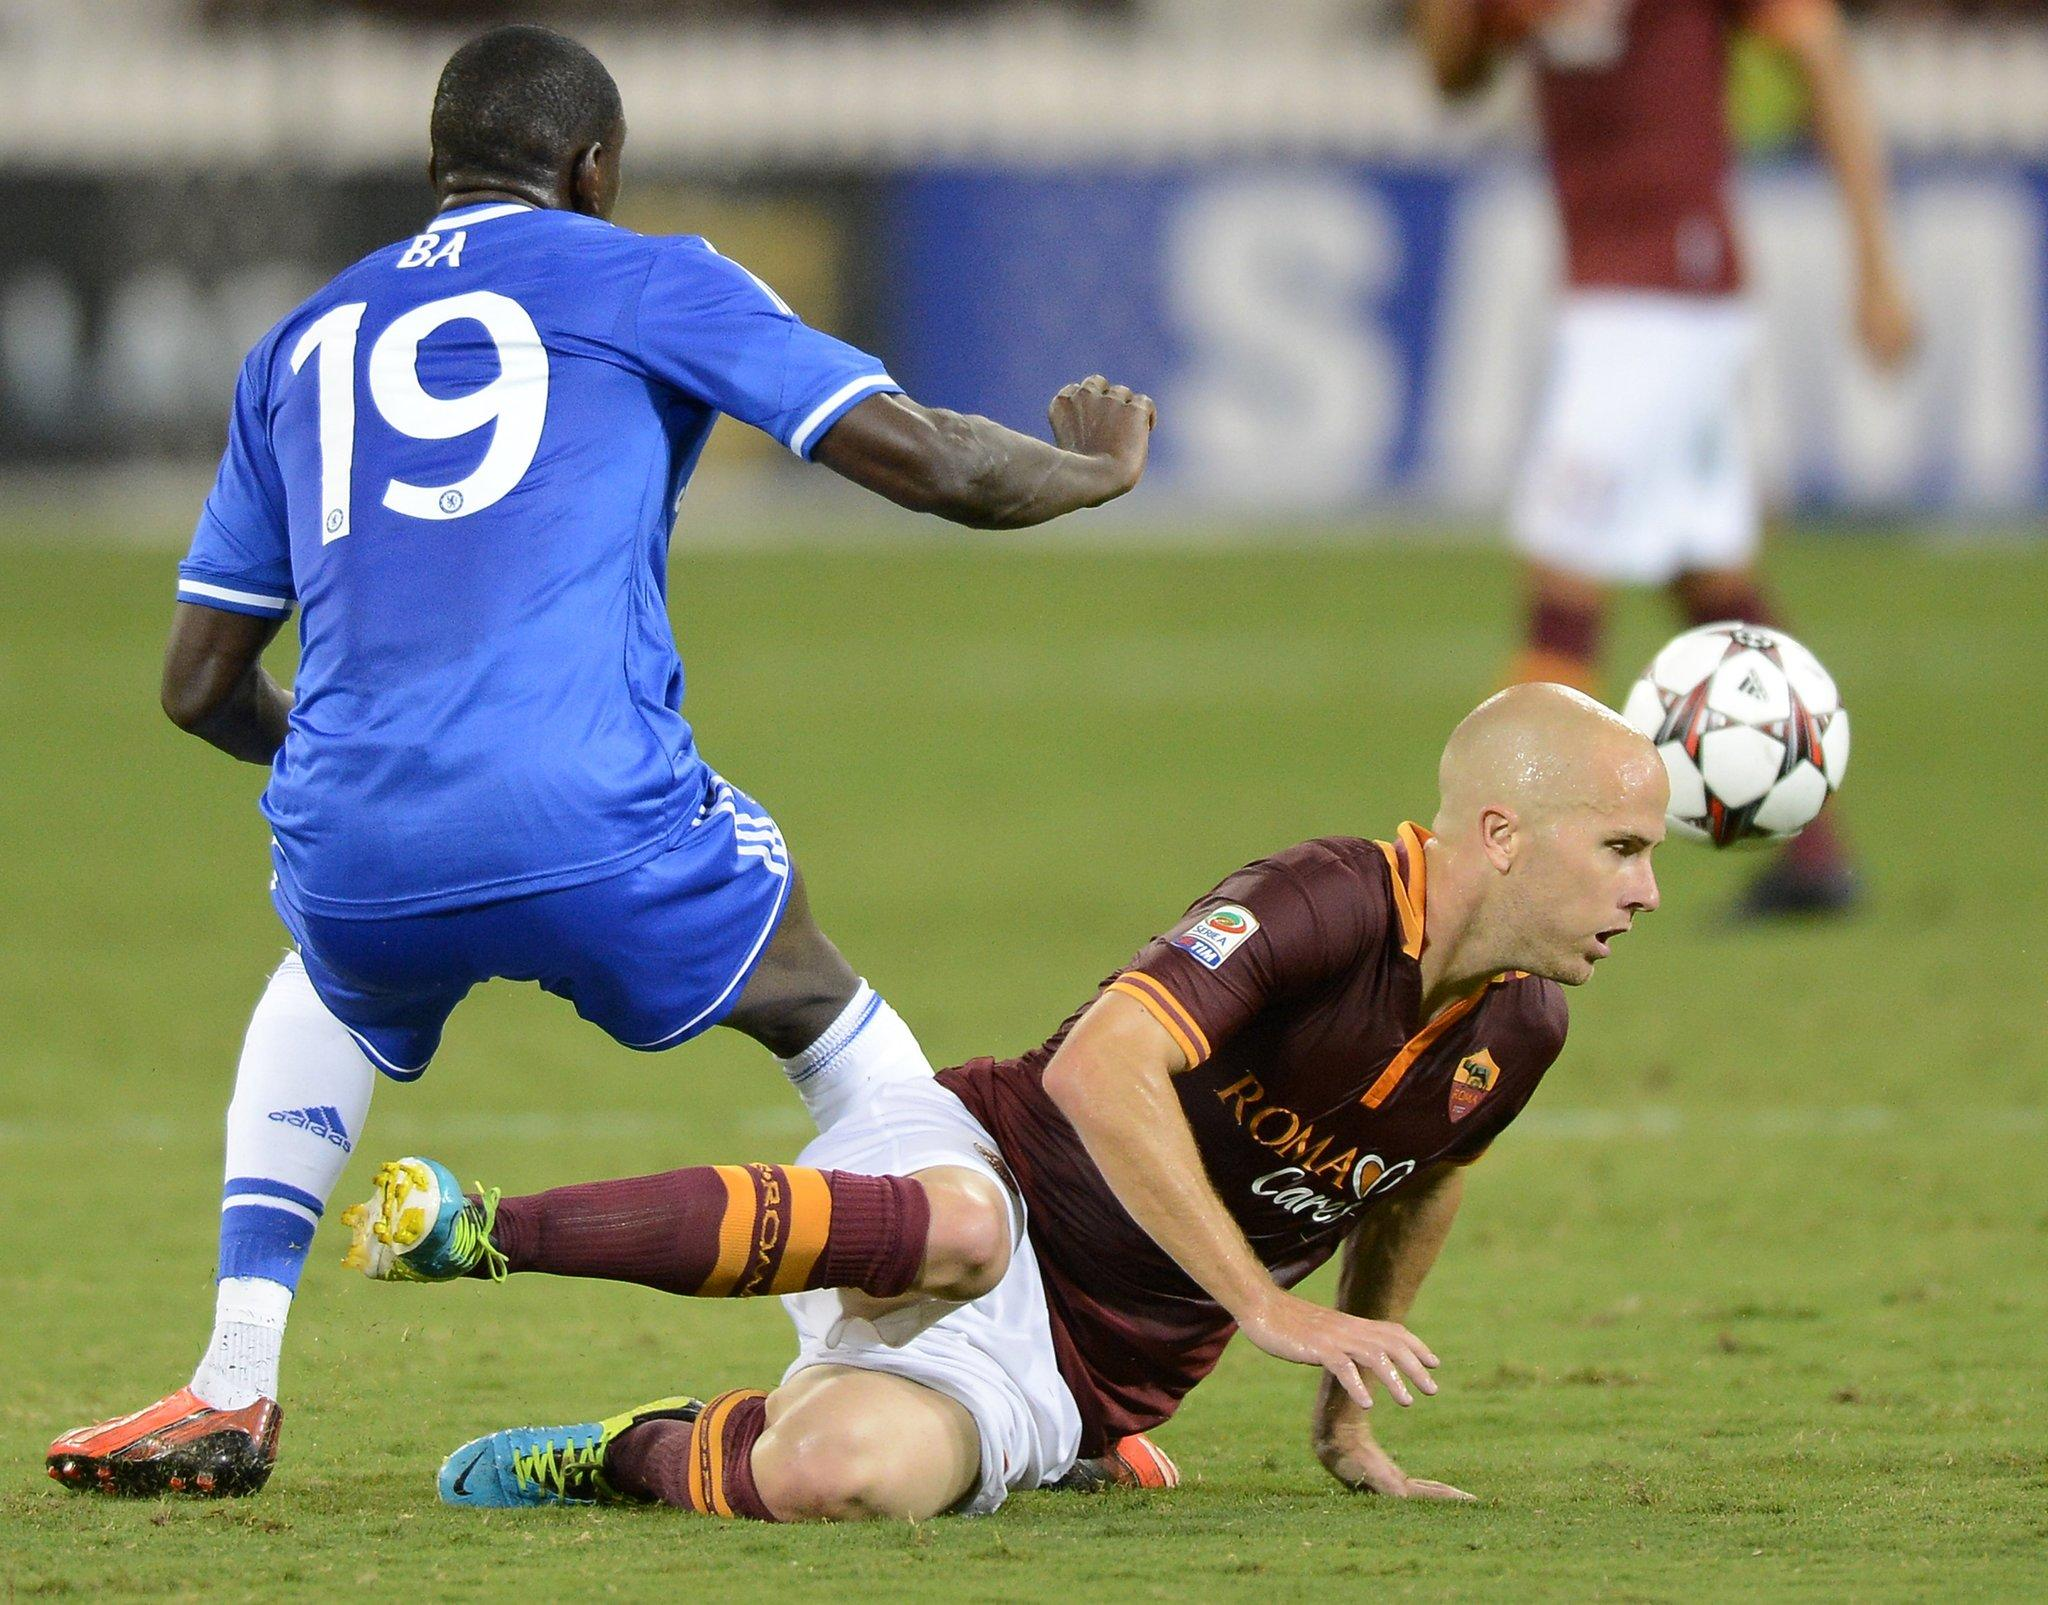 AS Roma midfielder Michael Bradley, right, attempts a tackle against Chelsea FC forward Demba Ba (19) in the second half of an internationals friendly at RFK Stadium in Washington.